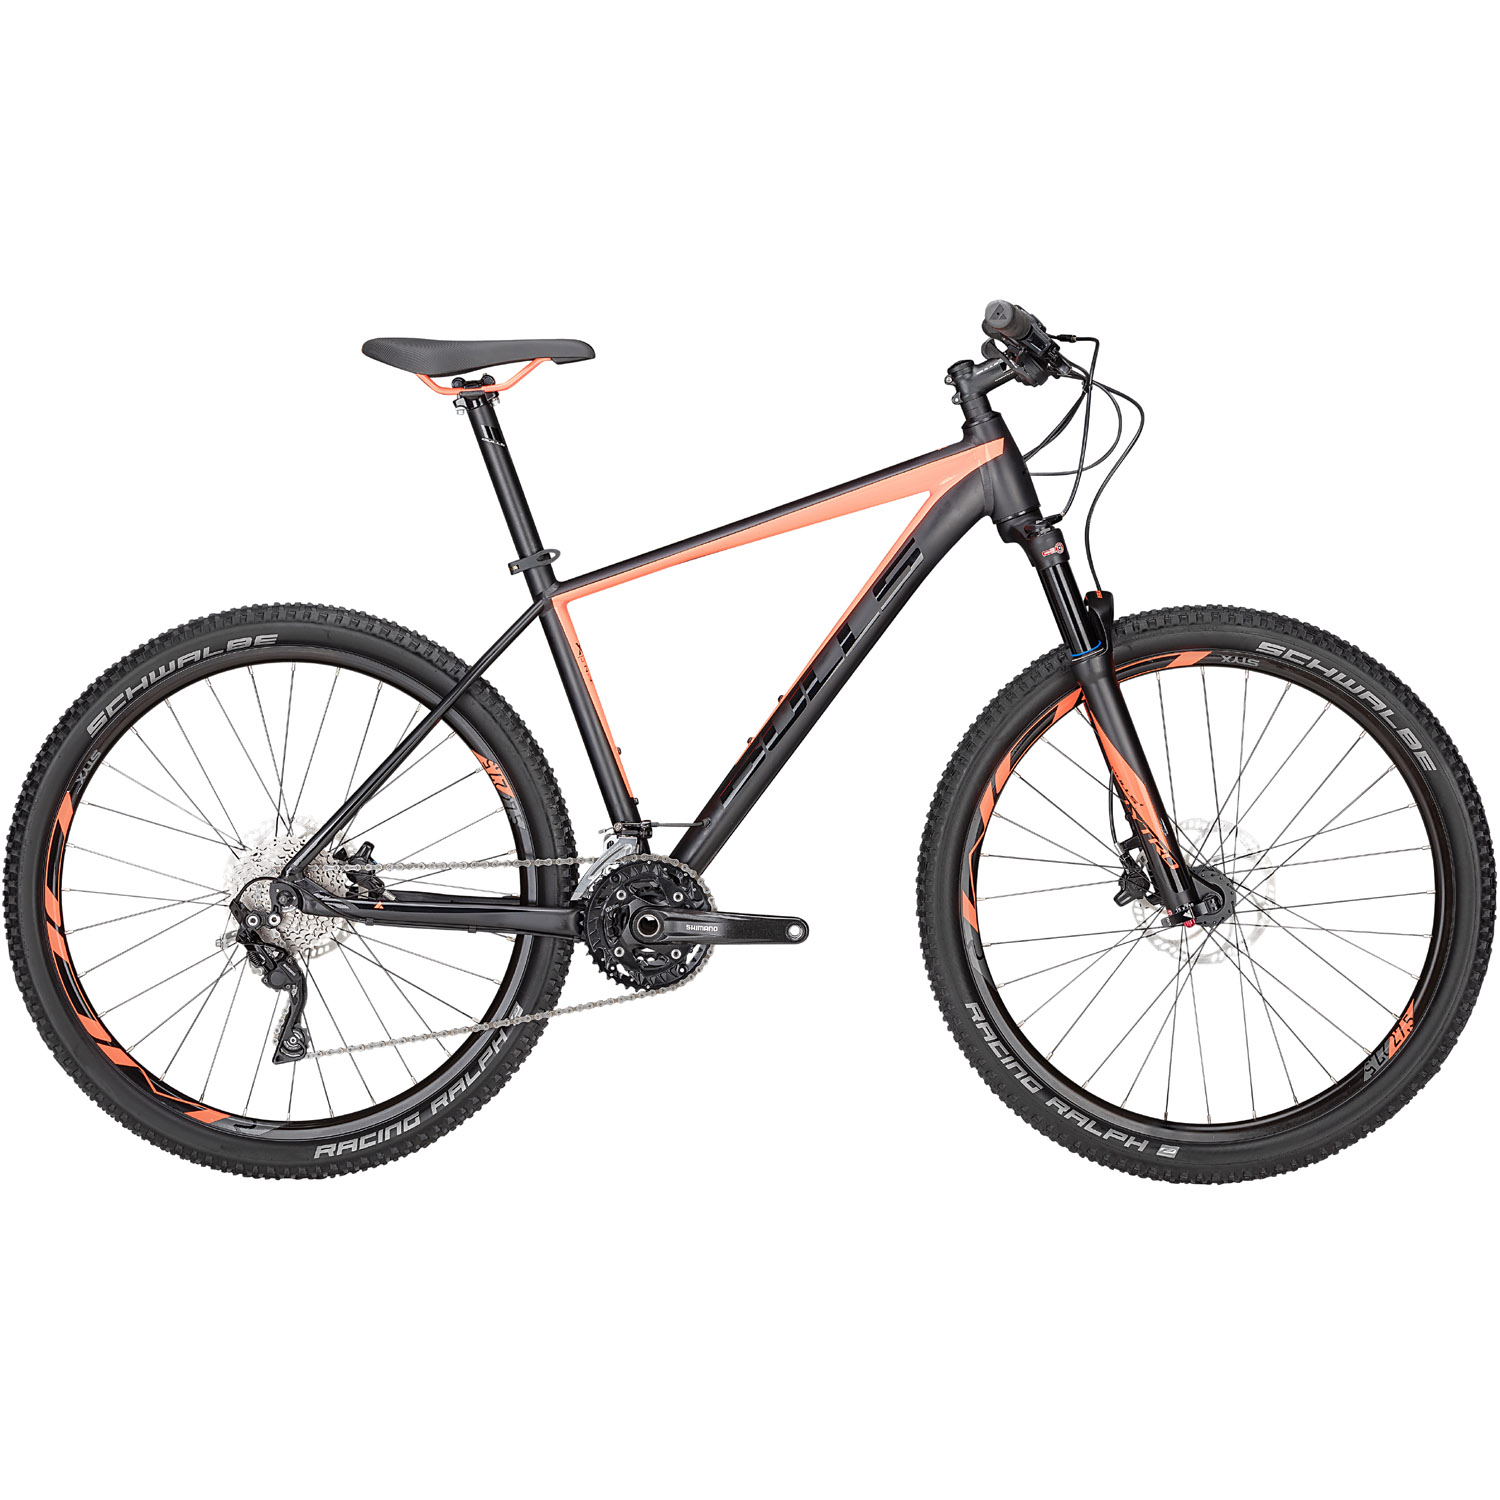 bulls copperhead 3 hardtail mountainbike 27 5 zoll schwarz. Black Bedroom Furniture Sets. Home Design Ideas